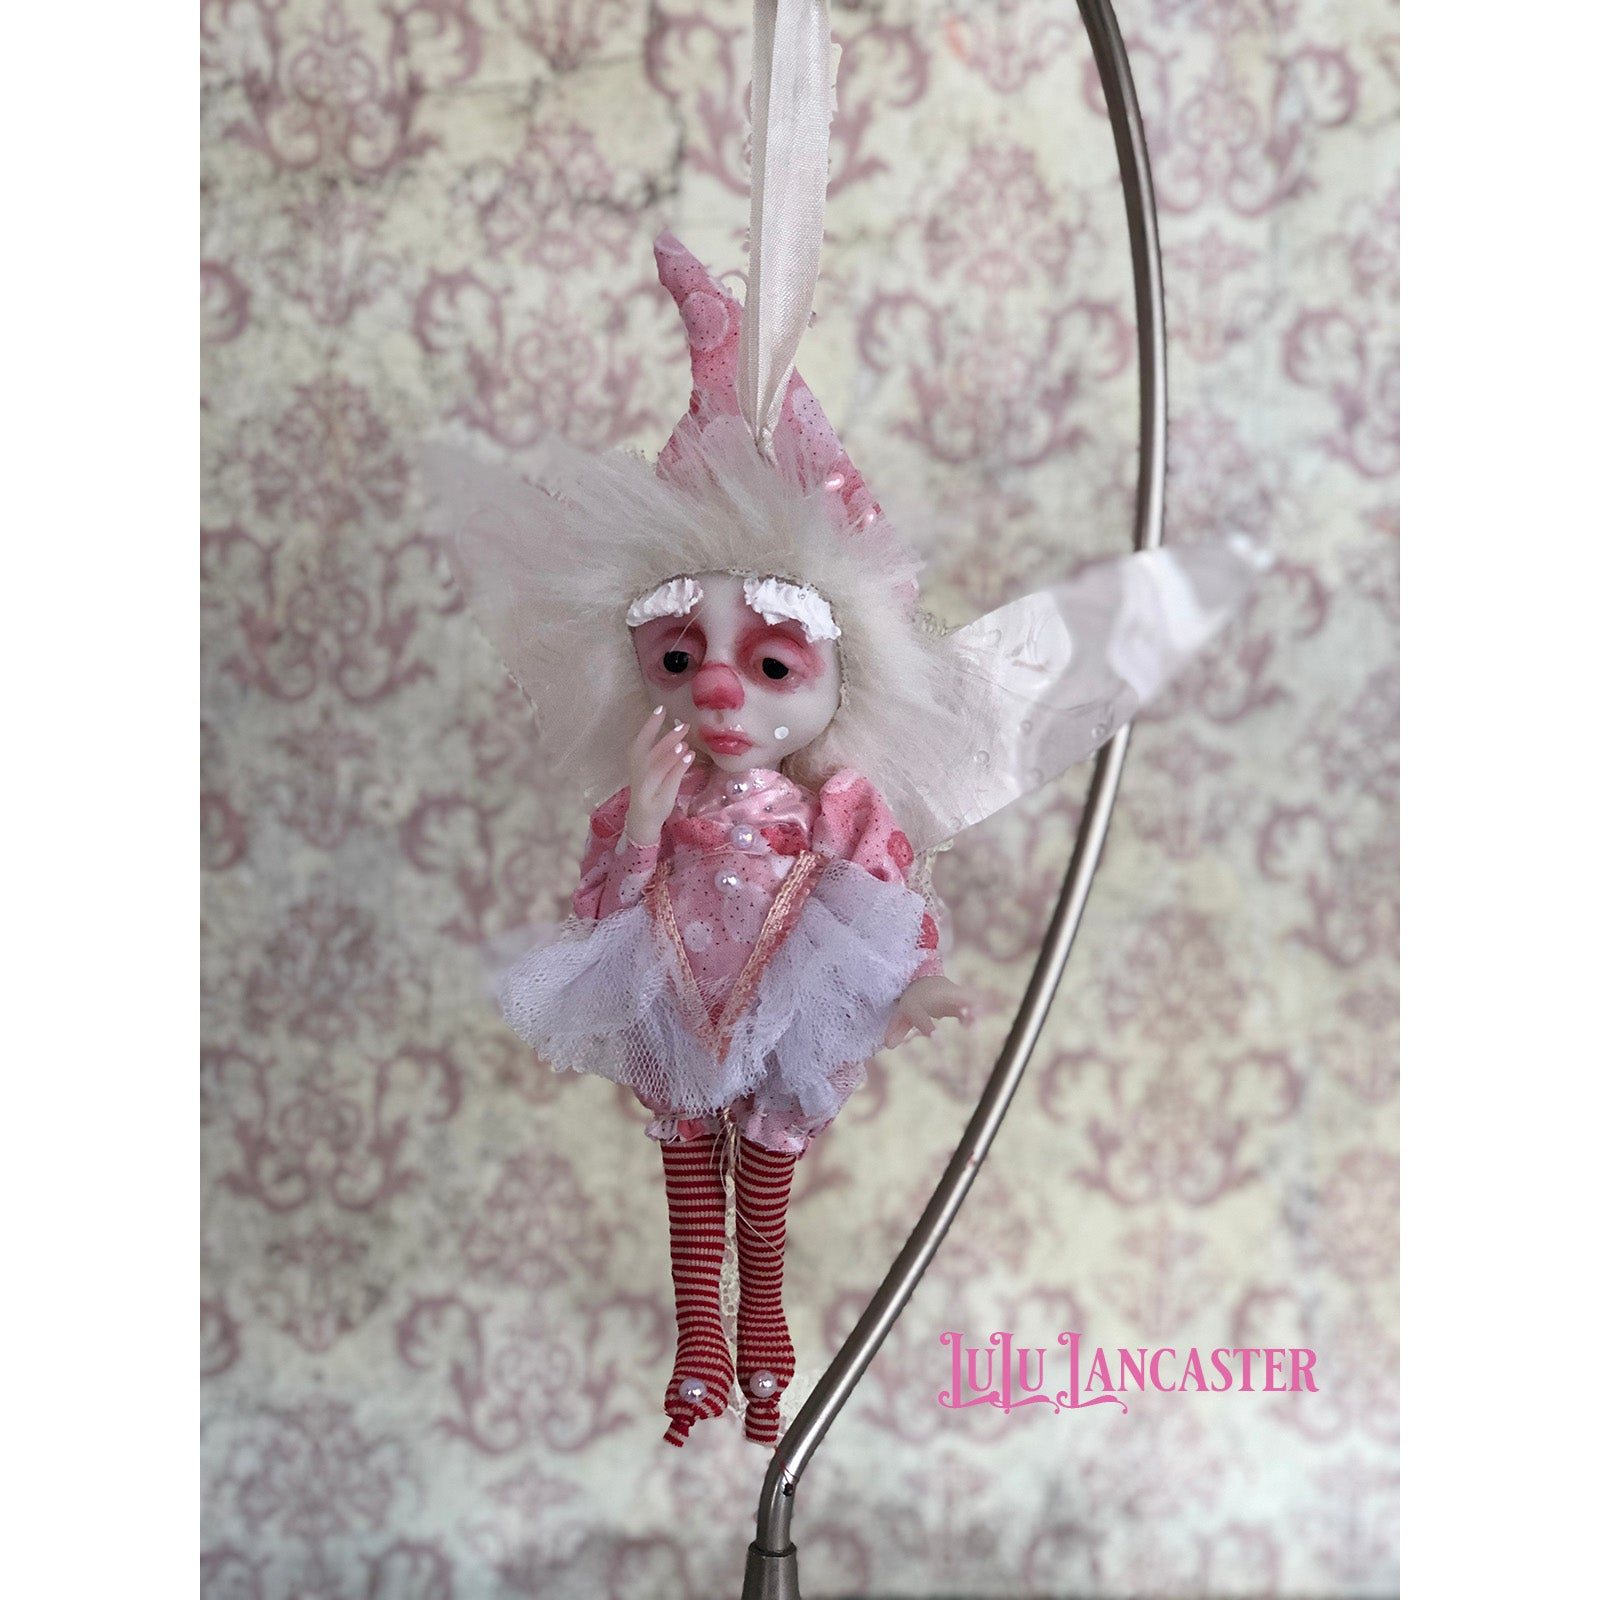 Pix SugarPlum Fairy Ornament OOAK Art Doll LuLu Lancaster